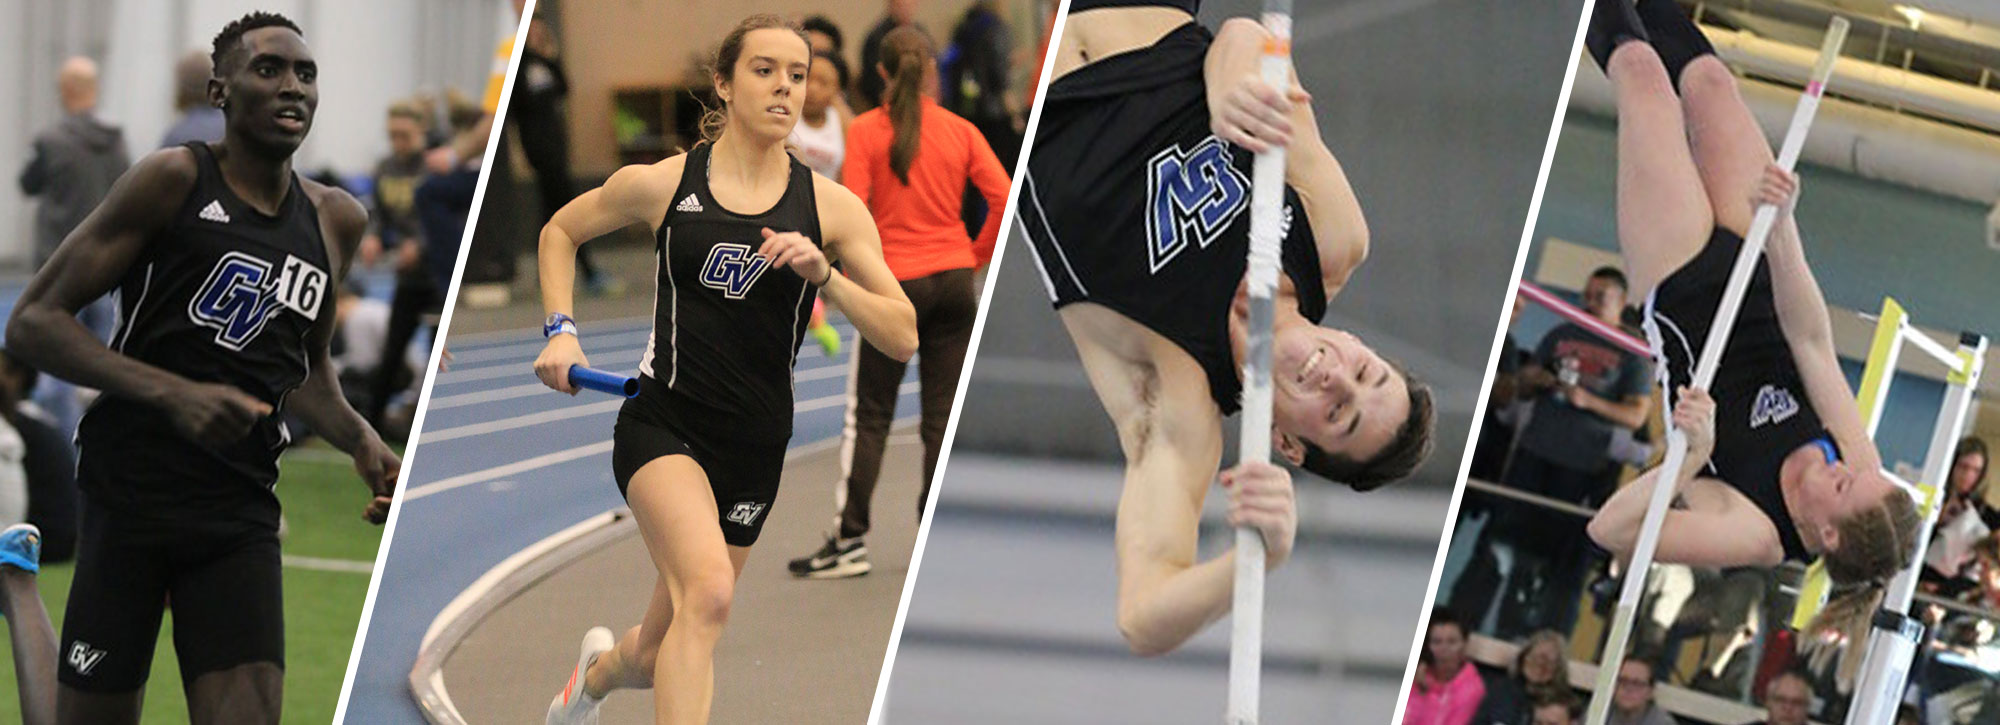 GVSU Lakers Sweep GLIAC Indoor Track Week 6 Honors